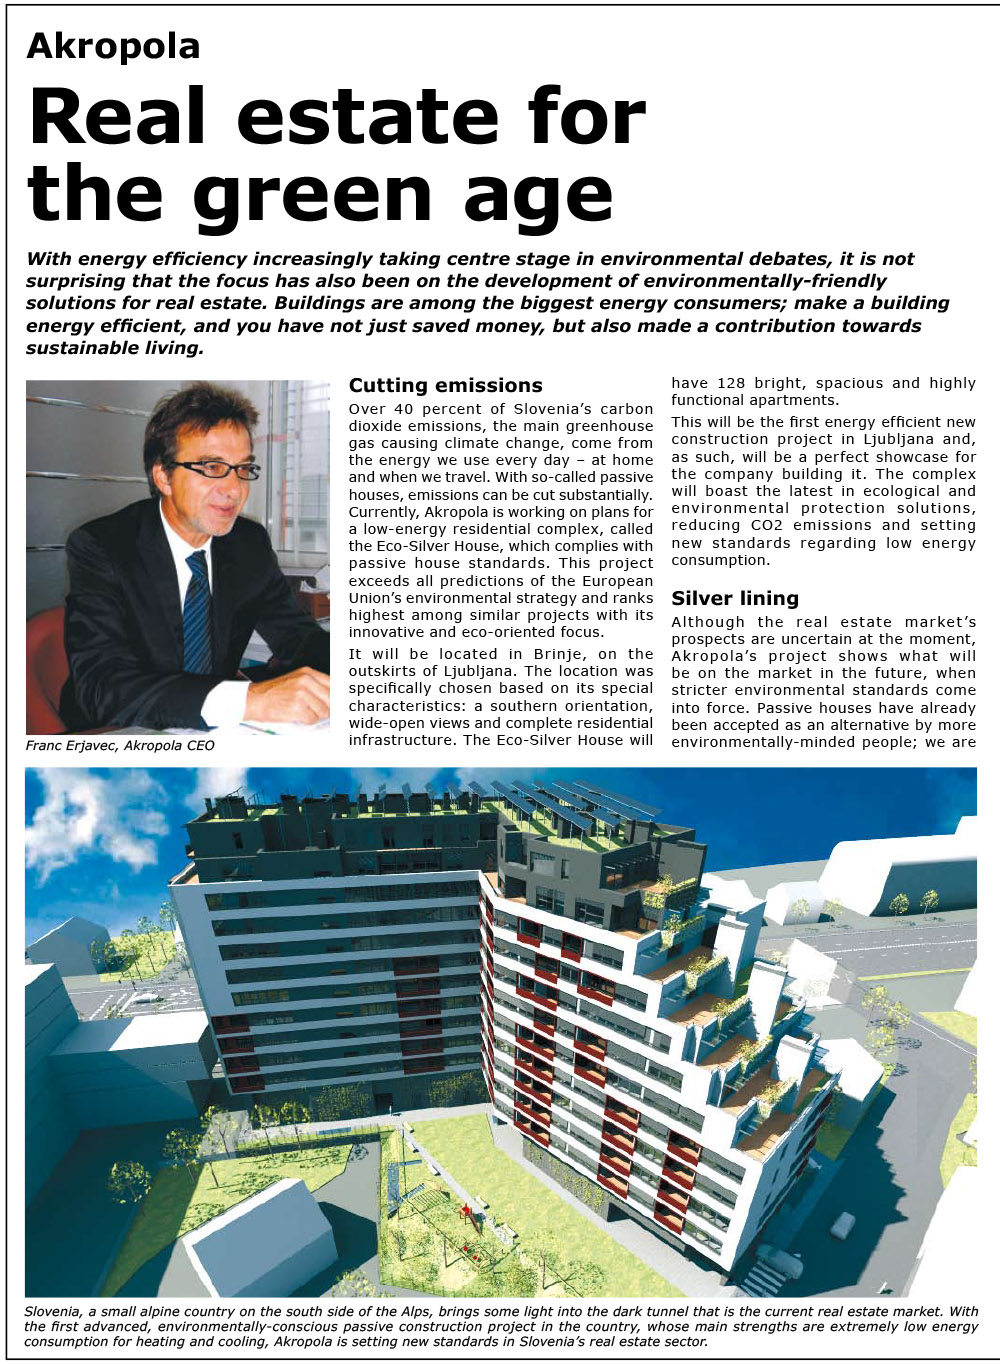 Akropola - Real estate for the green age